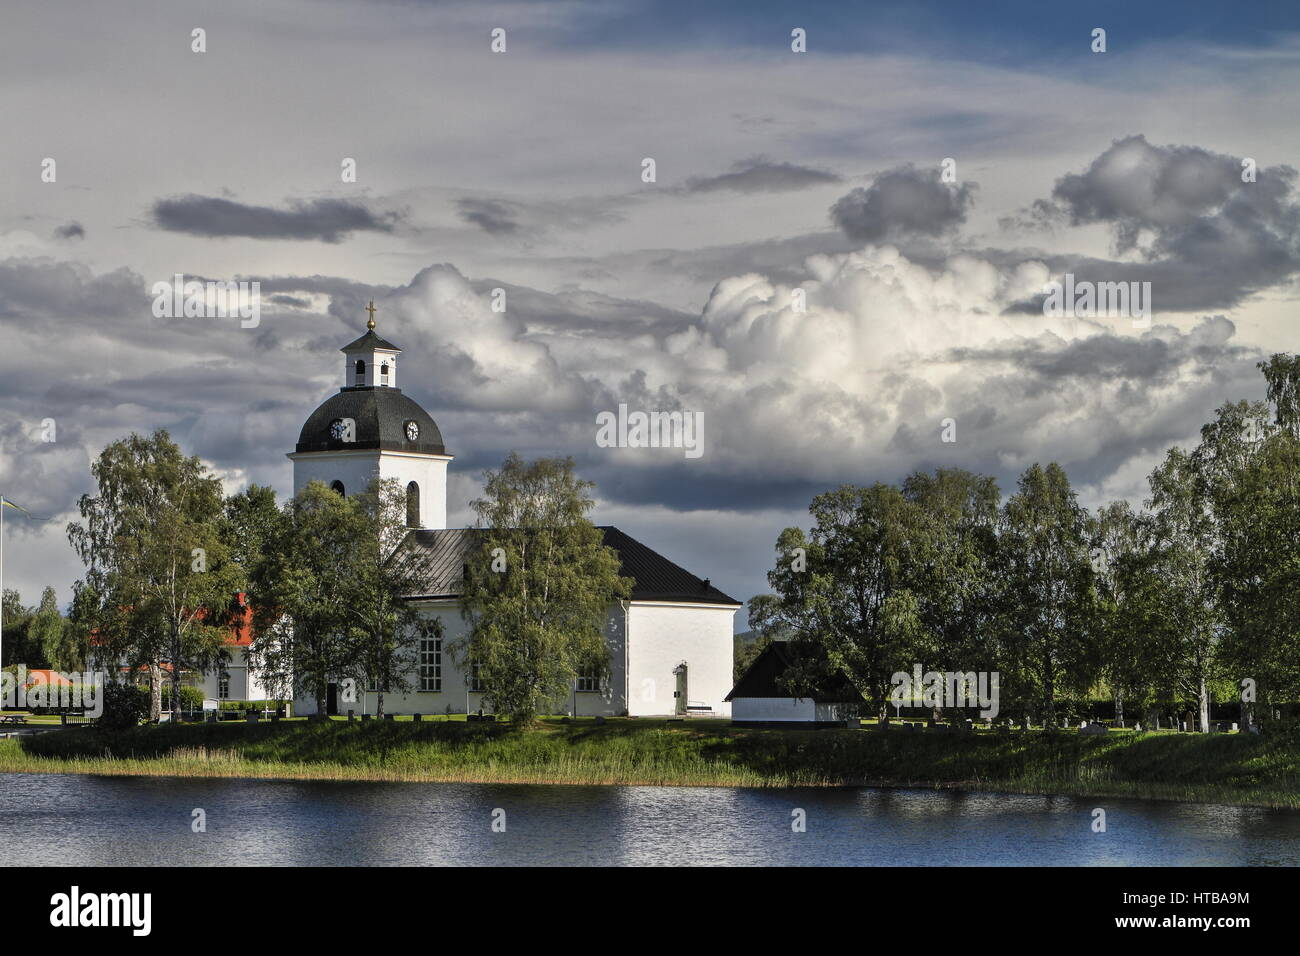 Church somewhere in the middle of Sweden - Stock Image